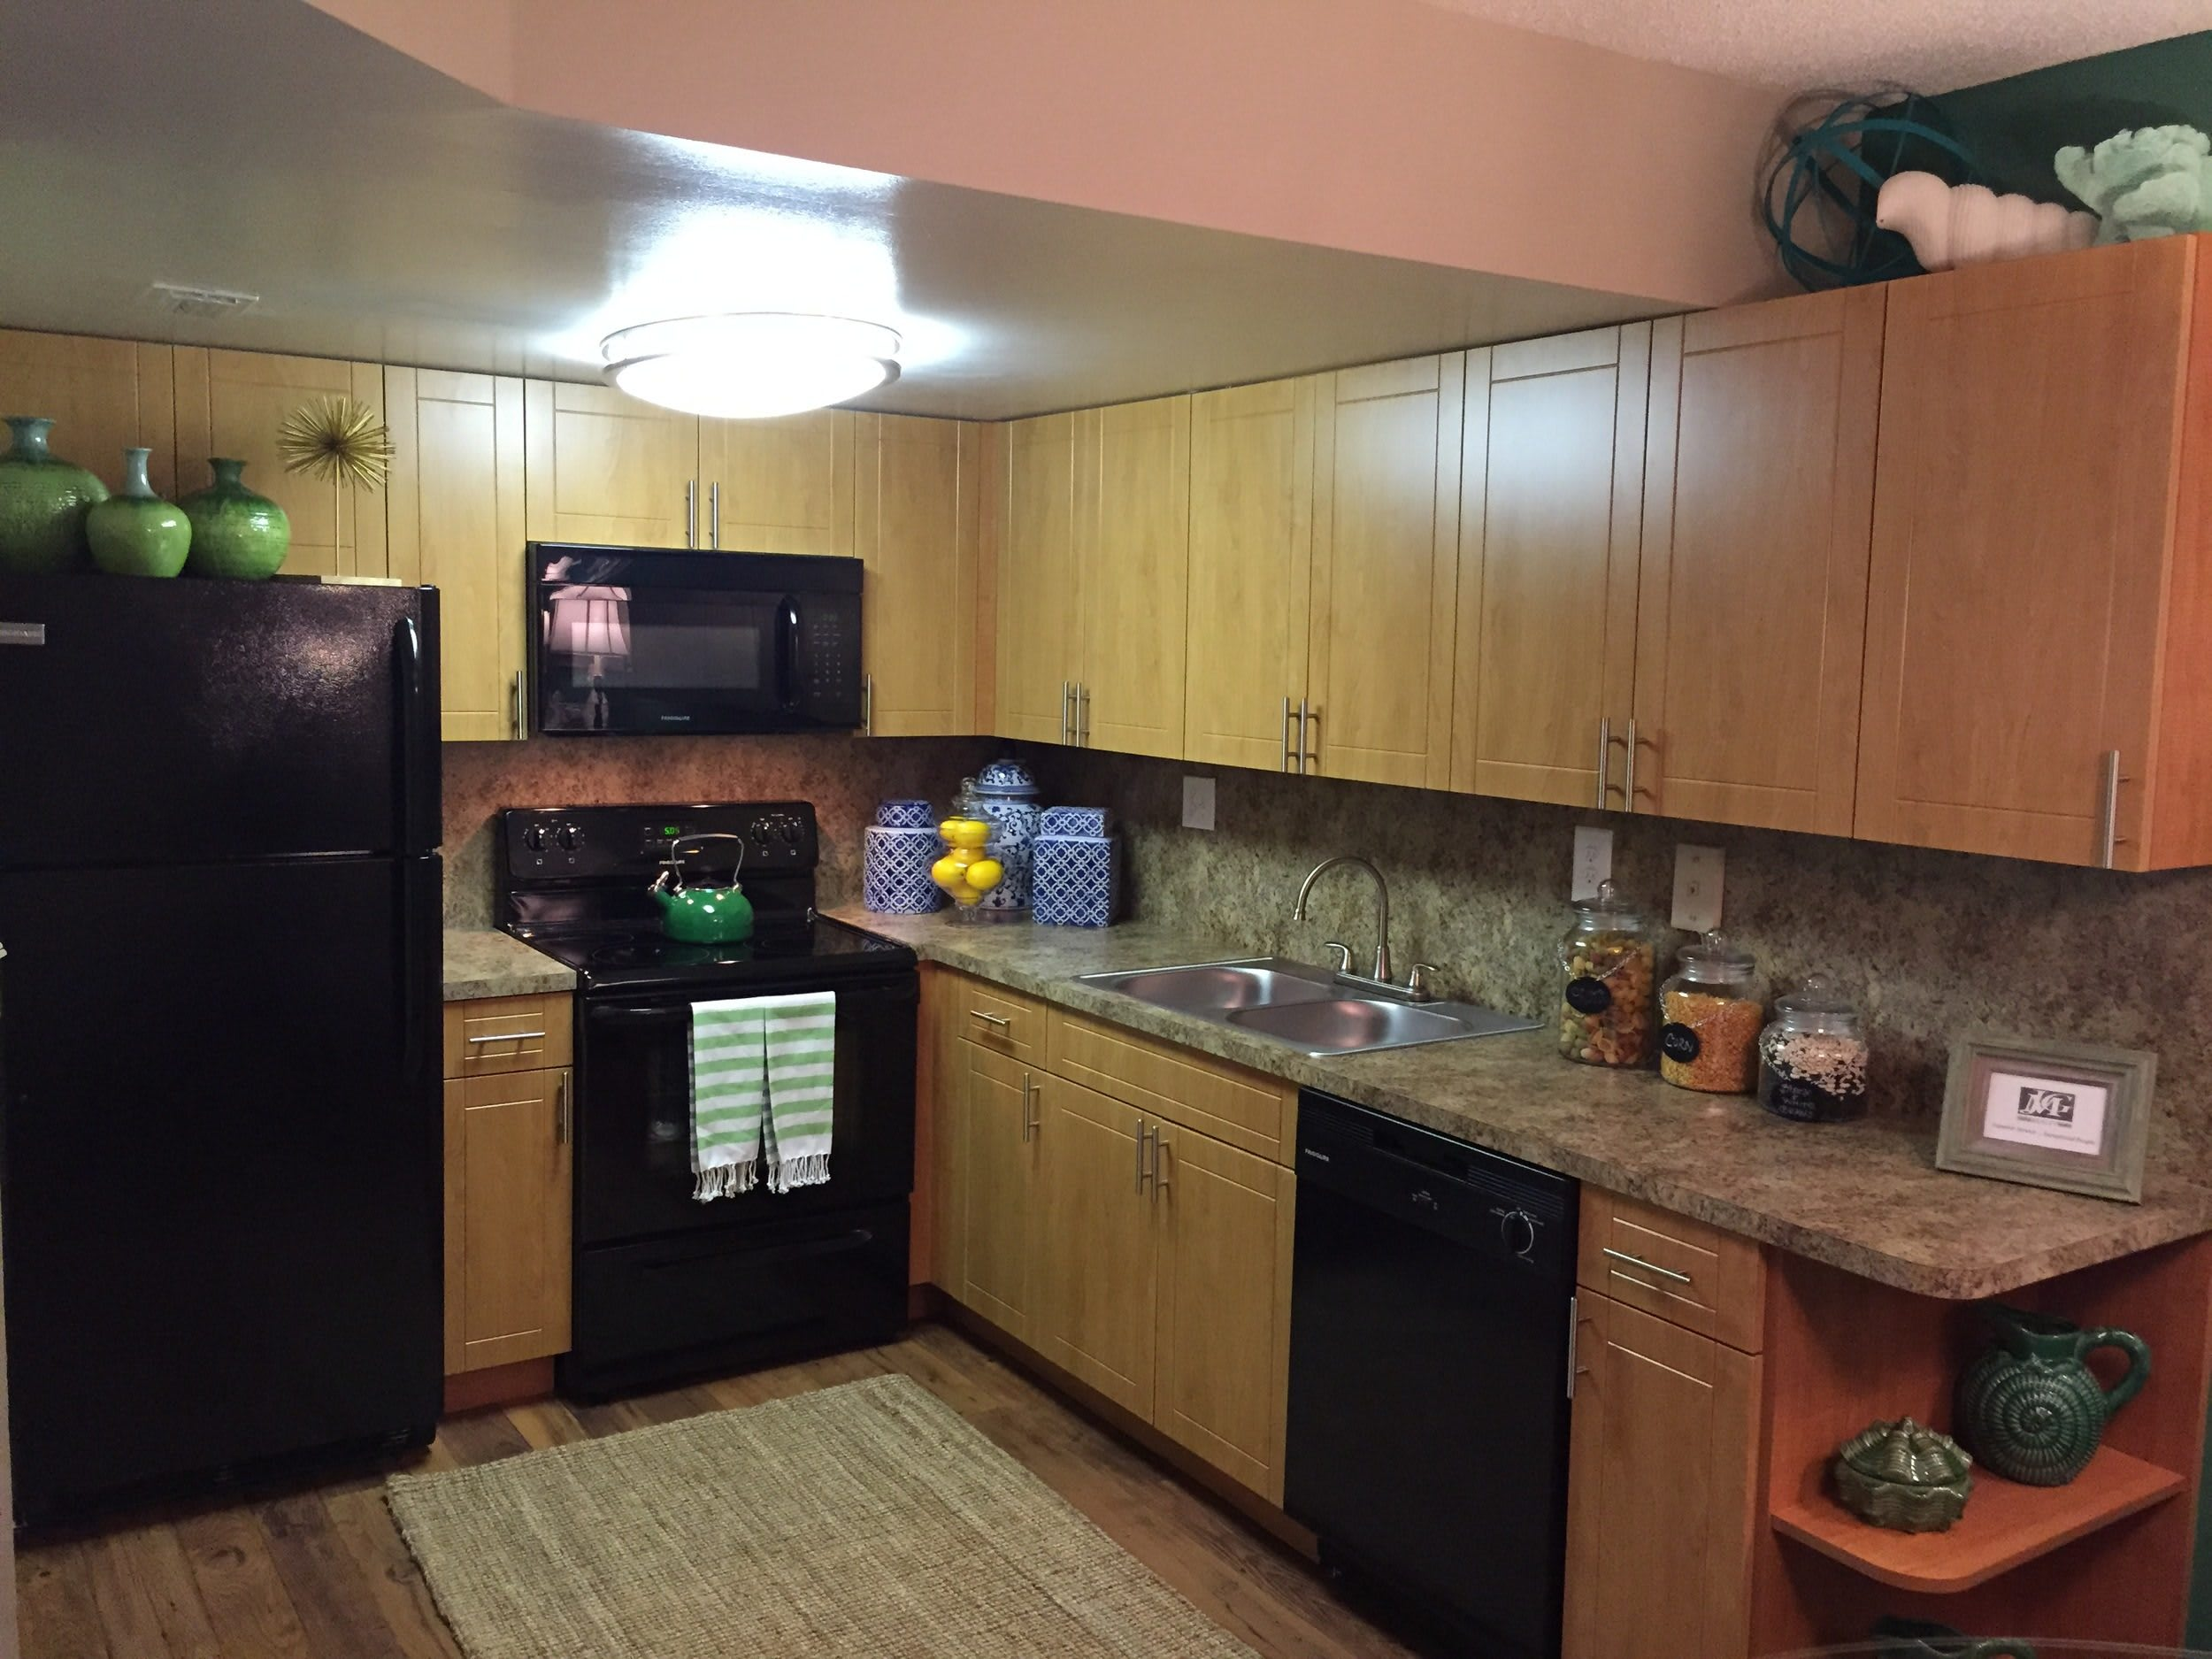 Kitchen at Fairway View Apartments in Hialeah, Florida